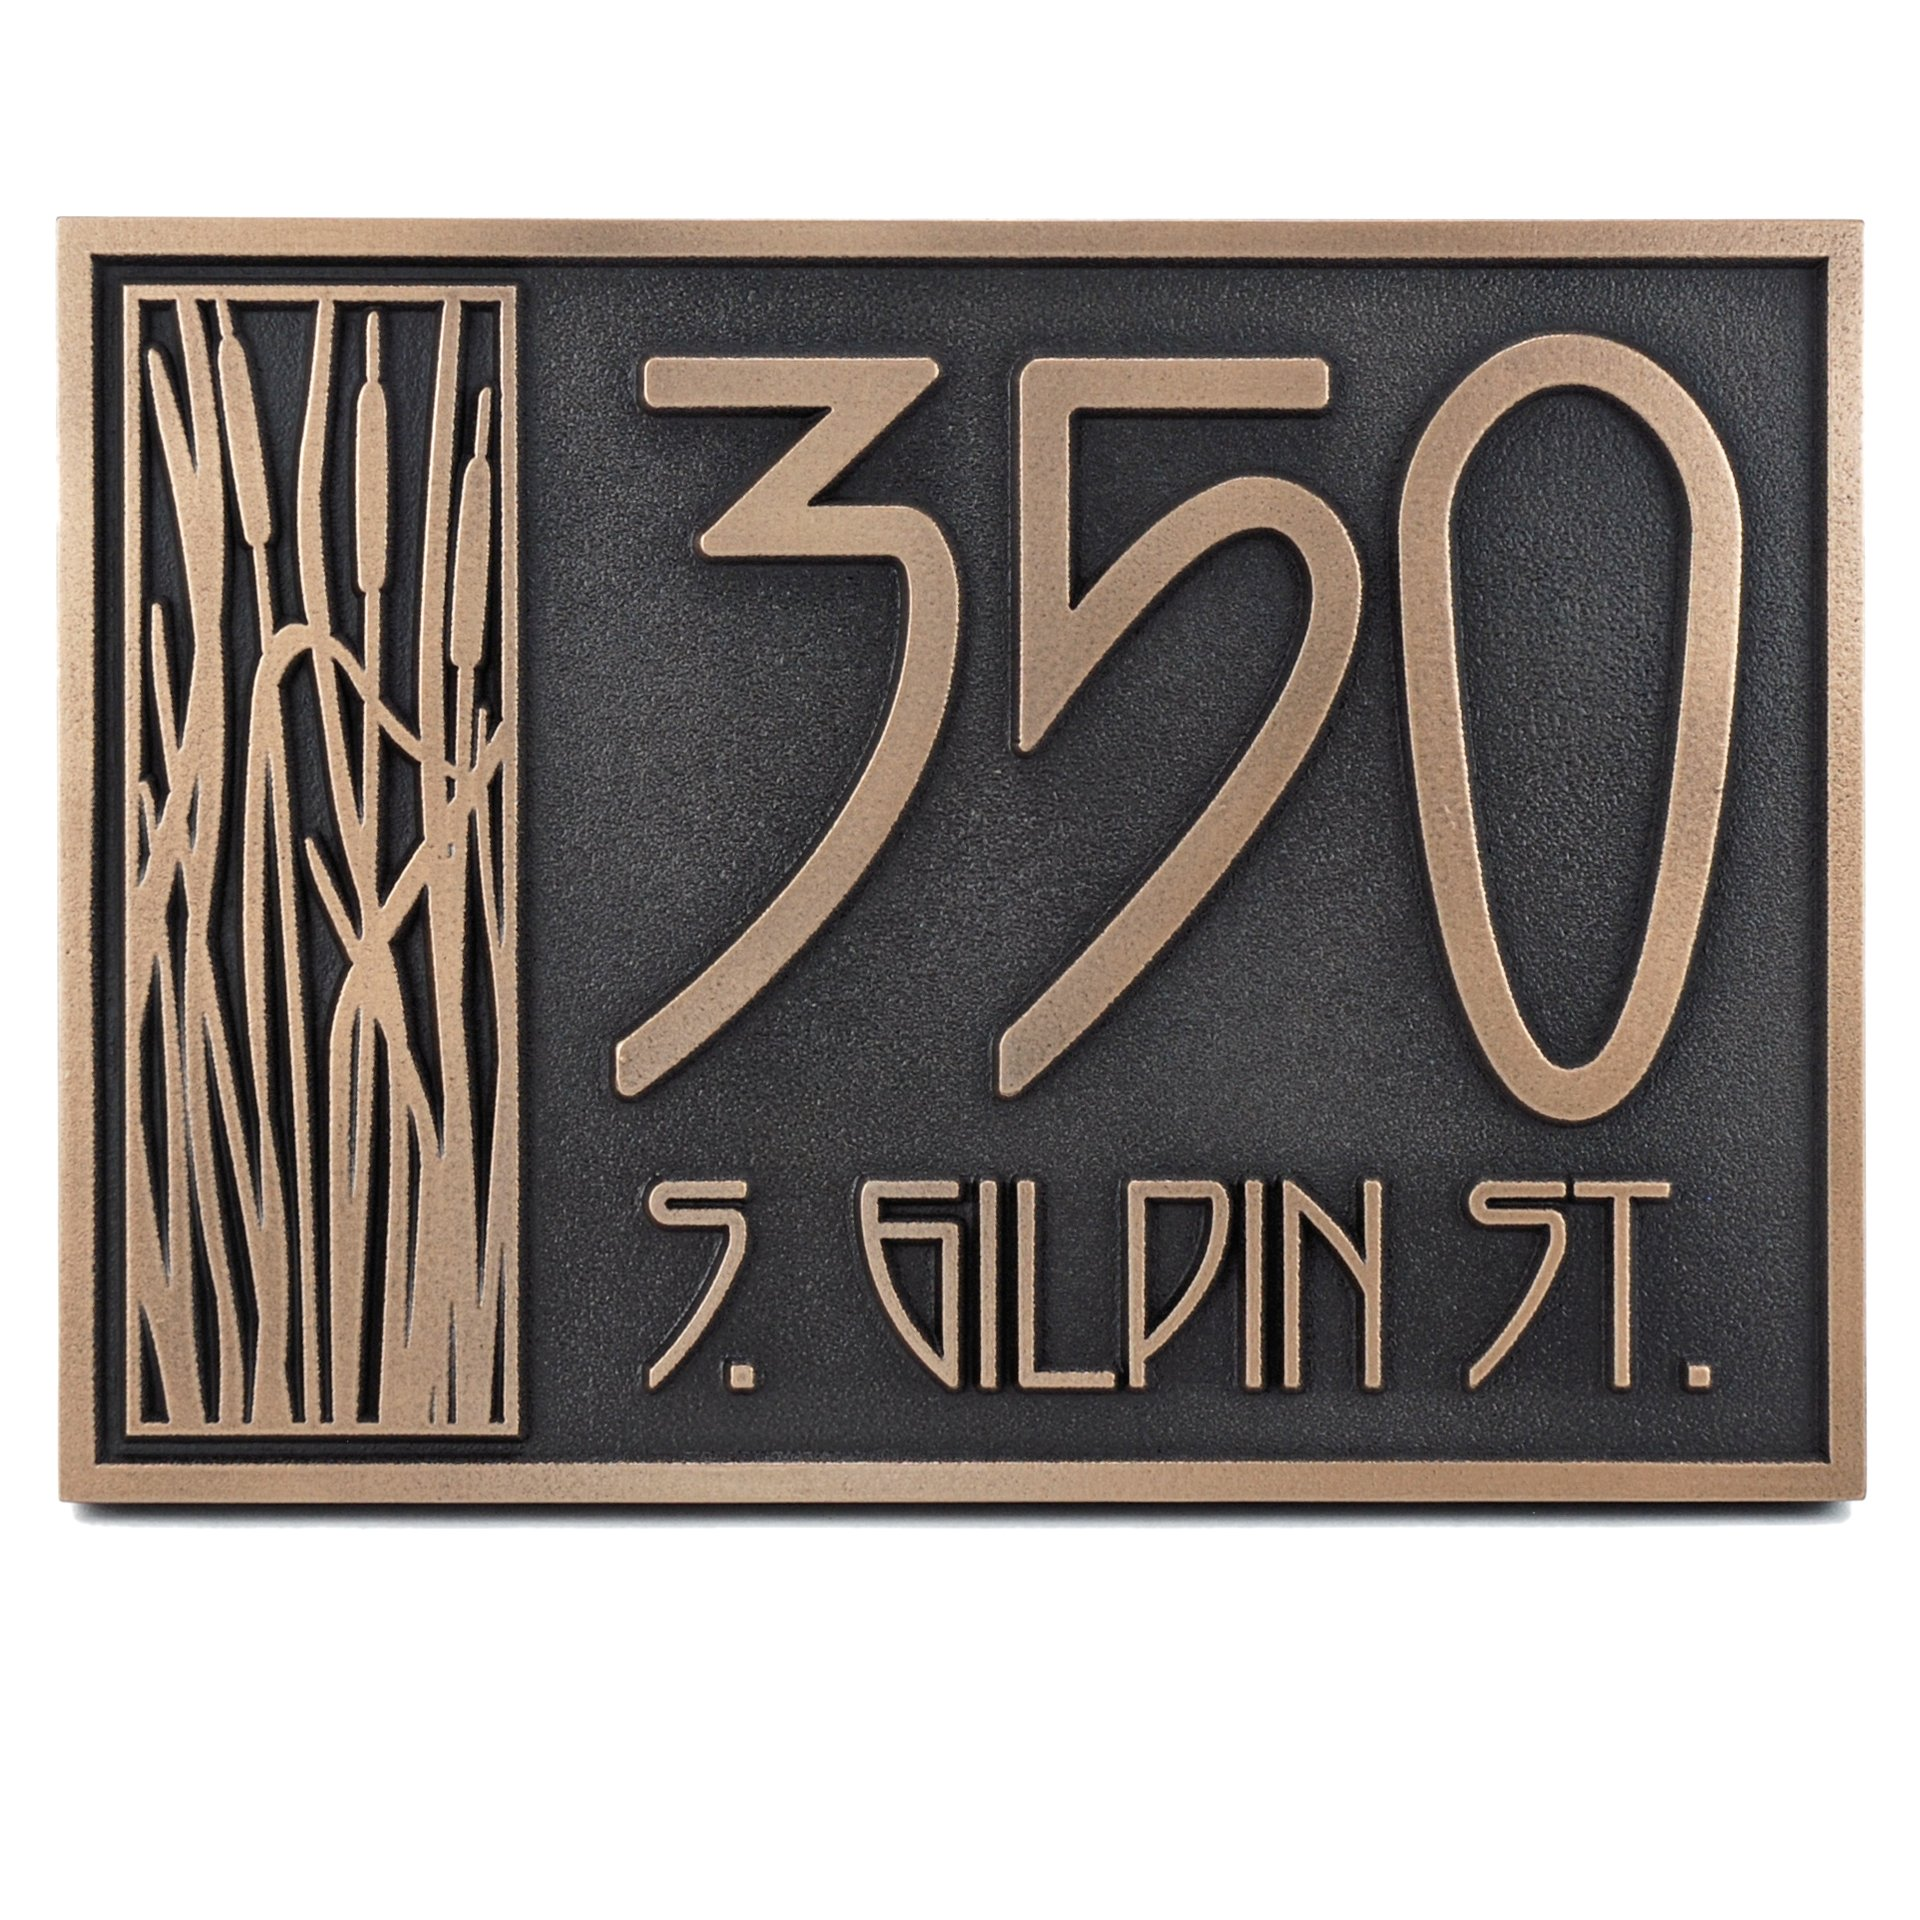 Craftsman House Numbers Plaque with Cattail - 12x8.5 - Raised Bronze Metal Coated Sign by Atlas Signs and Plaques